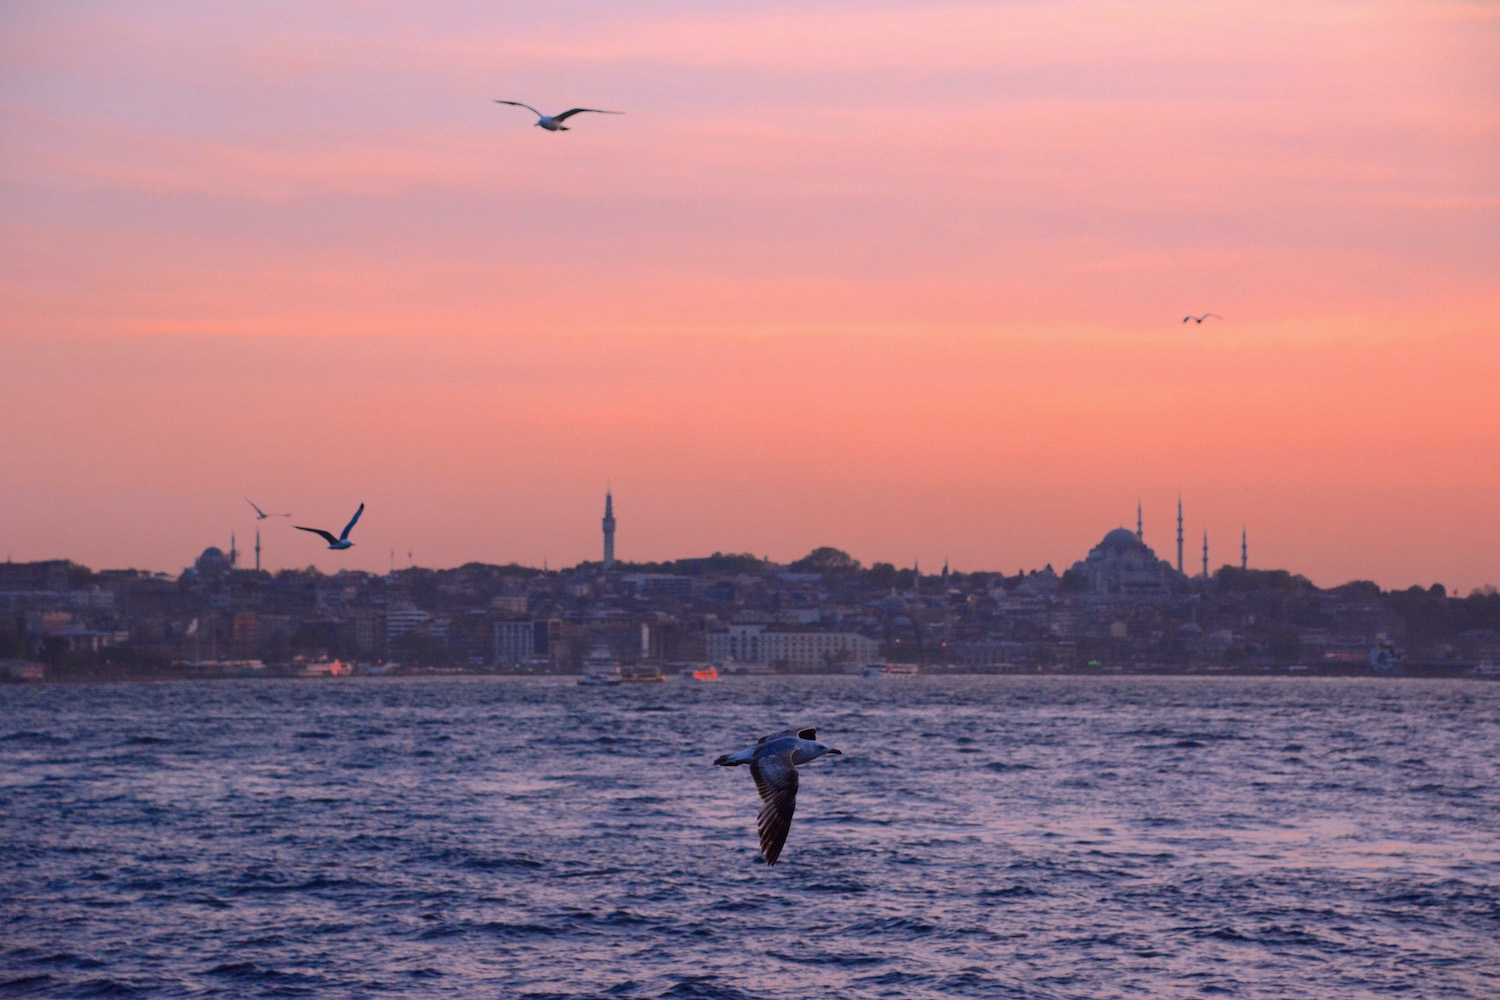 Istanbul, Turkey at Sunset